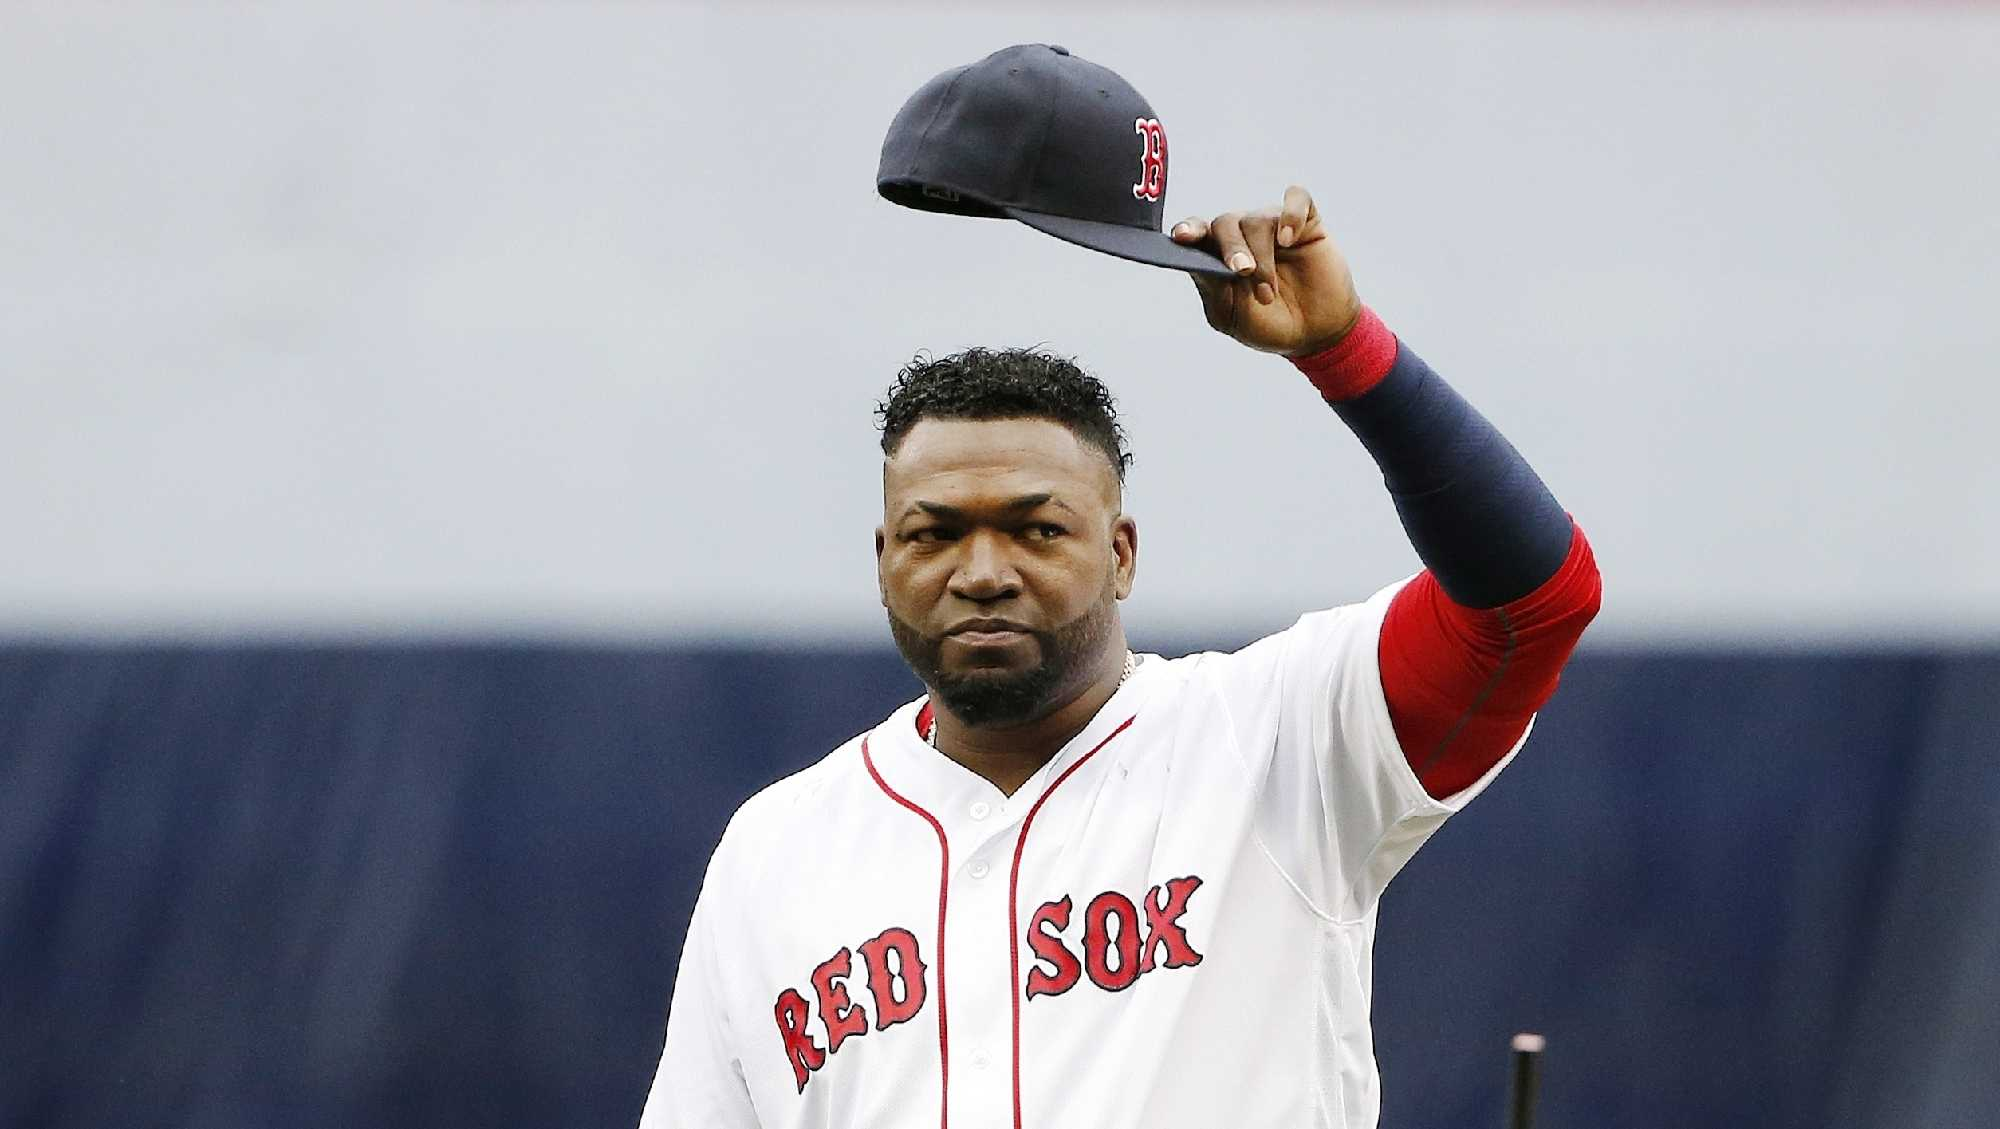 Boston Red Sox's David Ortiz tips his cap to the crowd during ceremonies before a baseball game against the Toronto Blue Jays in Boston, Sunday, Oct. 2, 2016.